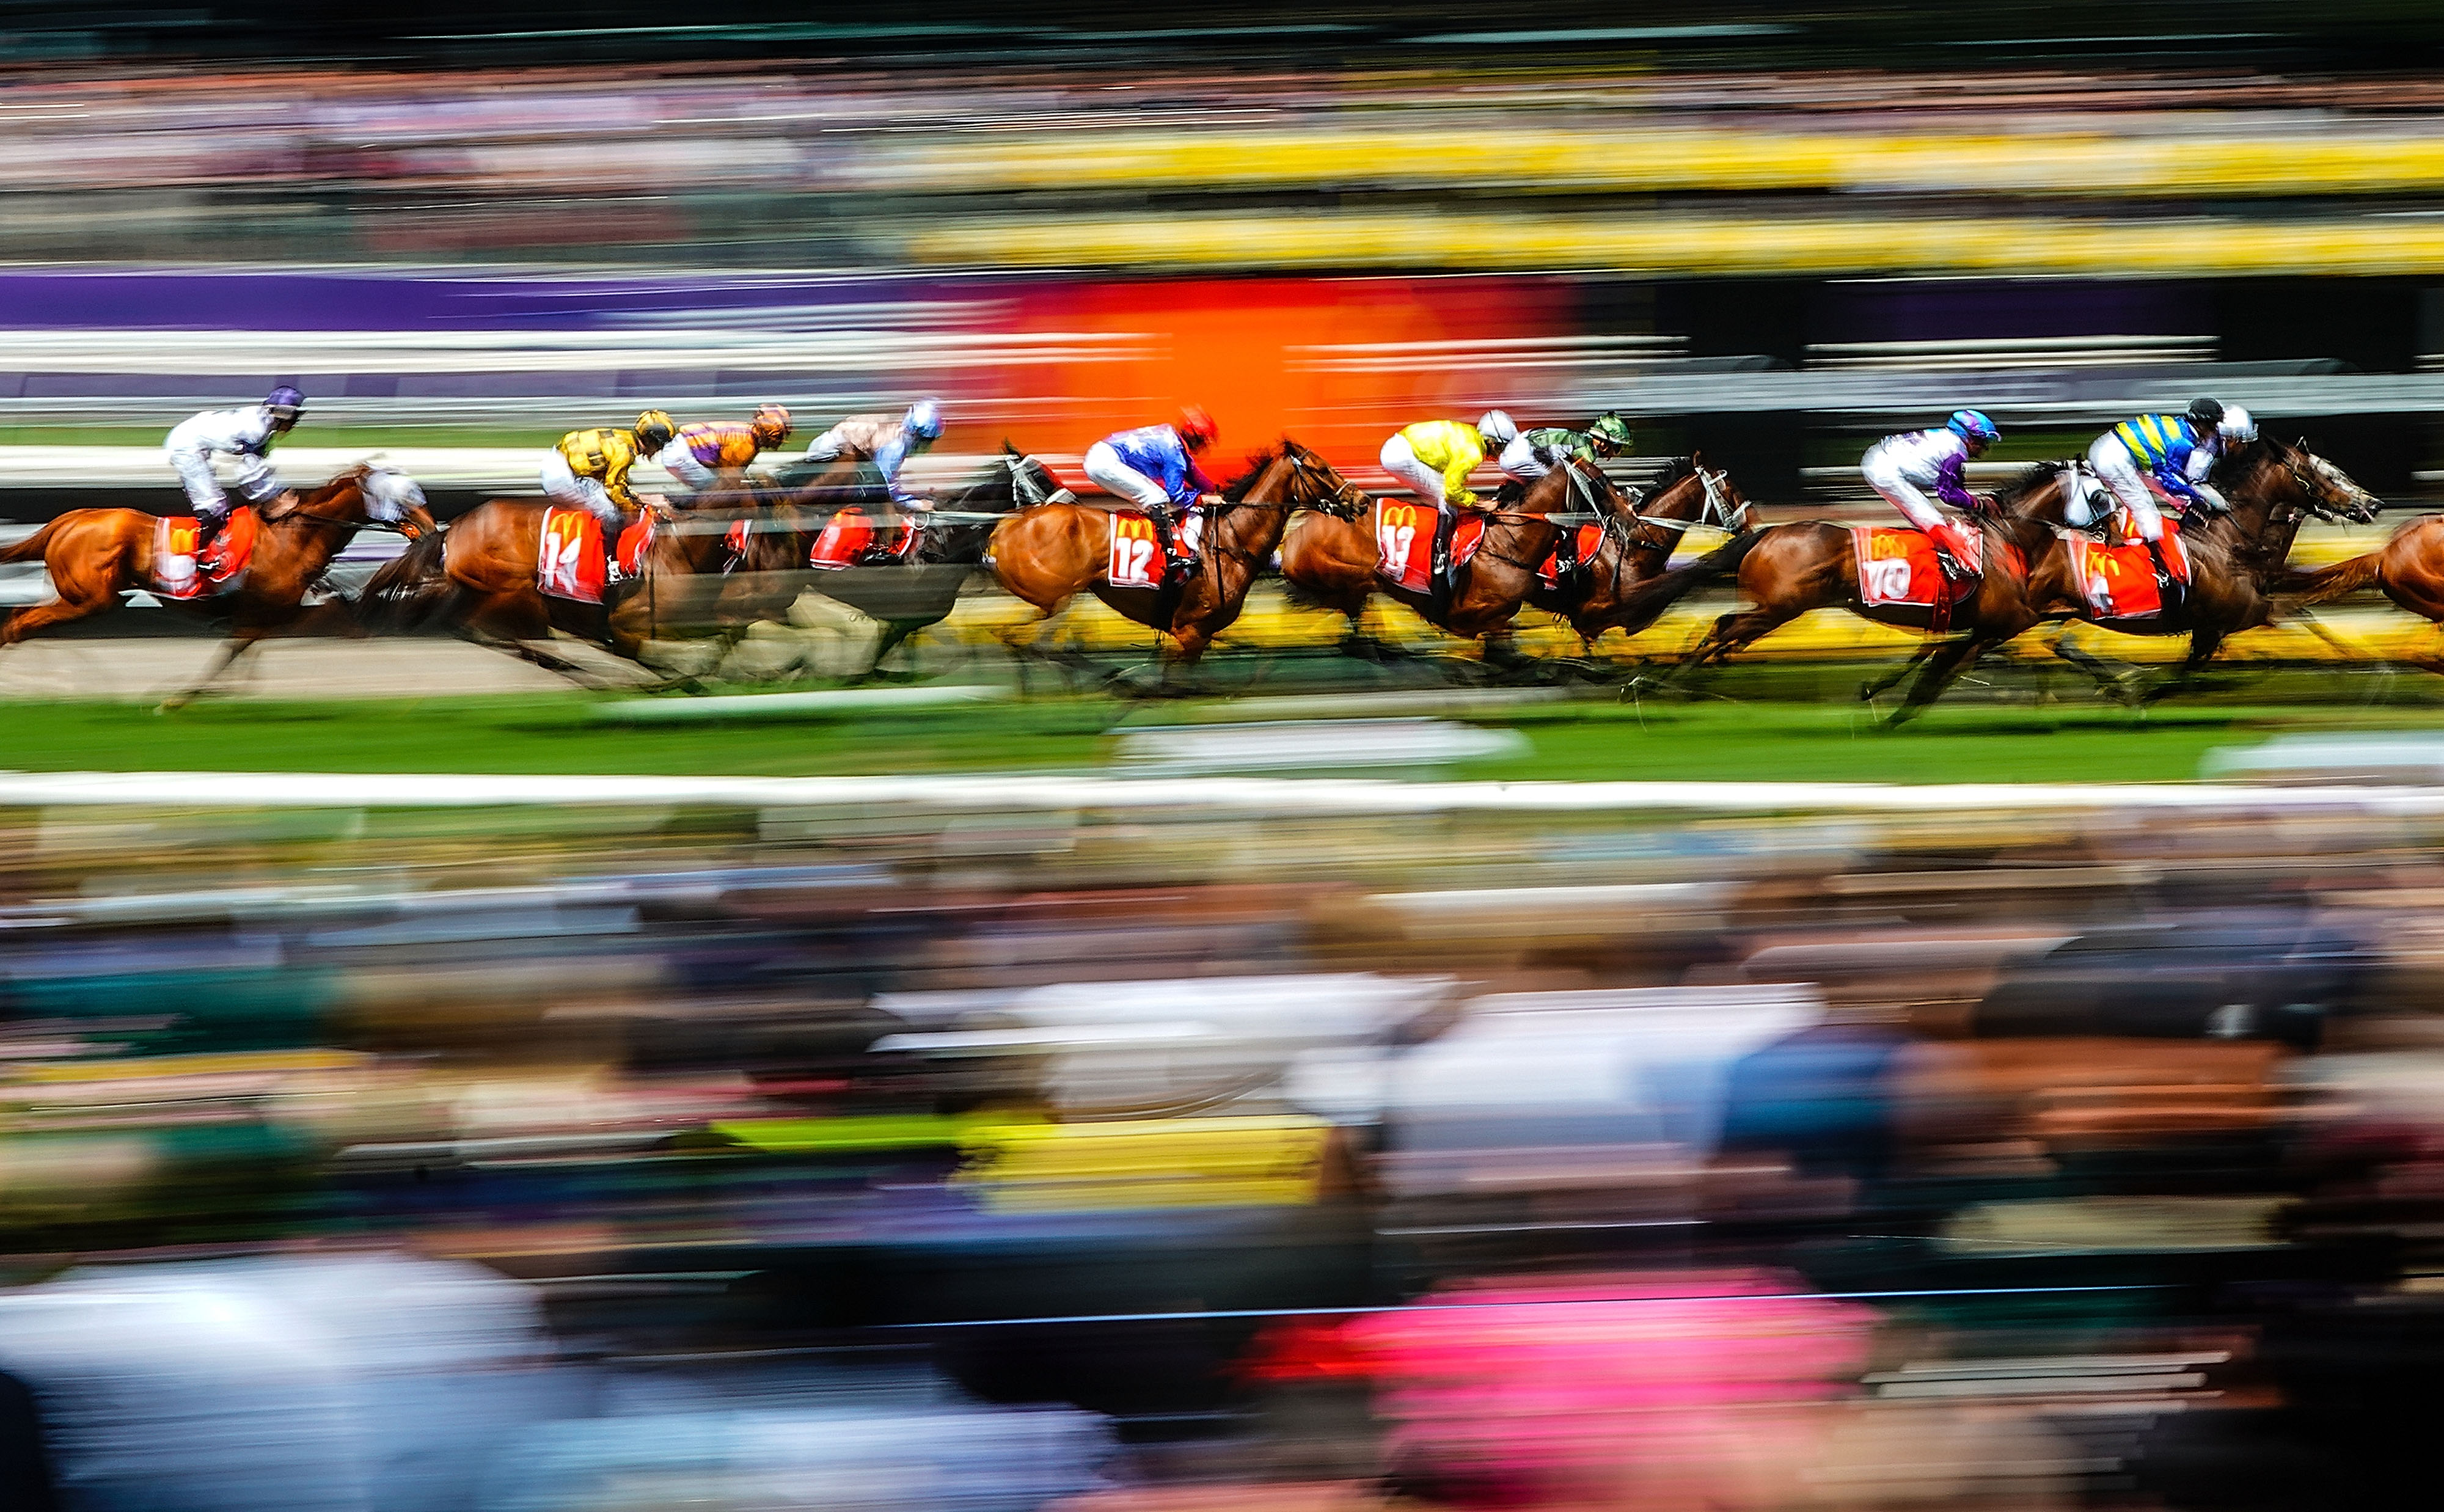 Sports category finalist: Horse RacingA general view during race 4 The Macca's Run during Melbourne Cup Day, at Flemington Racecourse in Melbourne, Tuesday, November 5, 2019. Category: Sports Camera: Alpha 9 II Lens: FE 70-200mm F2.8 GM OSS Focal length: 100mm Shutter speed: 1/8s Aperture: ƒ/29 ISO: 50